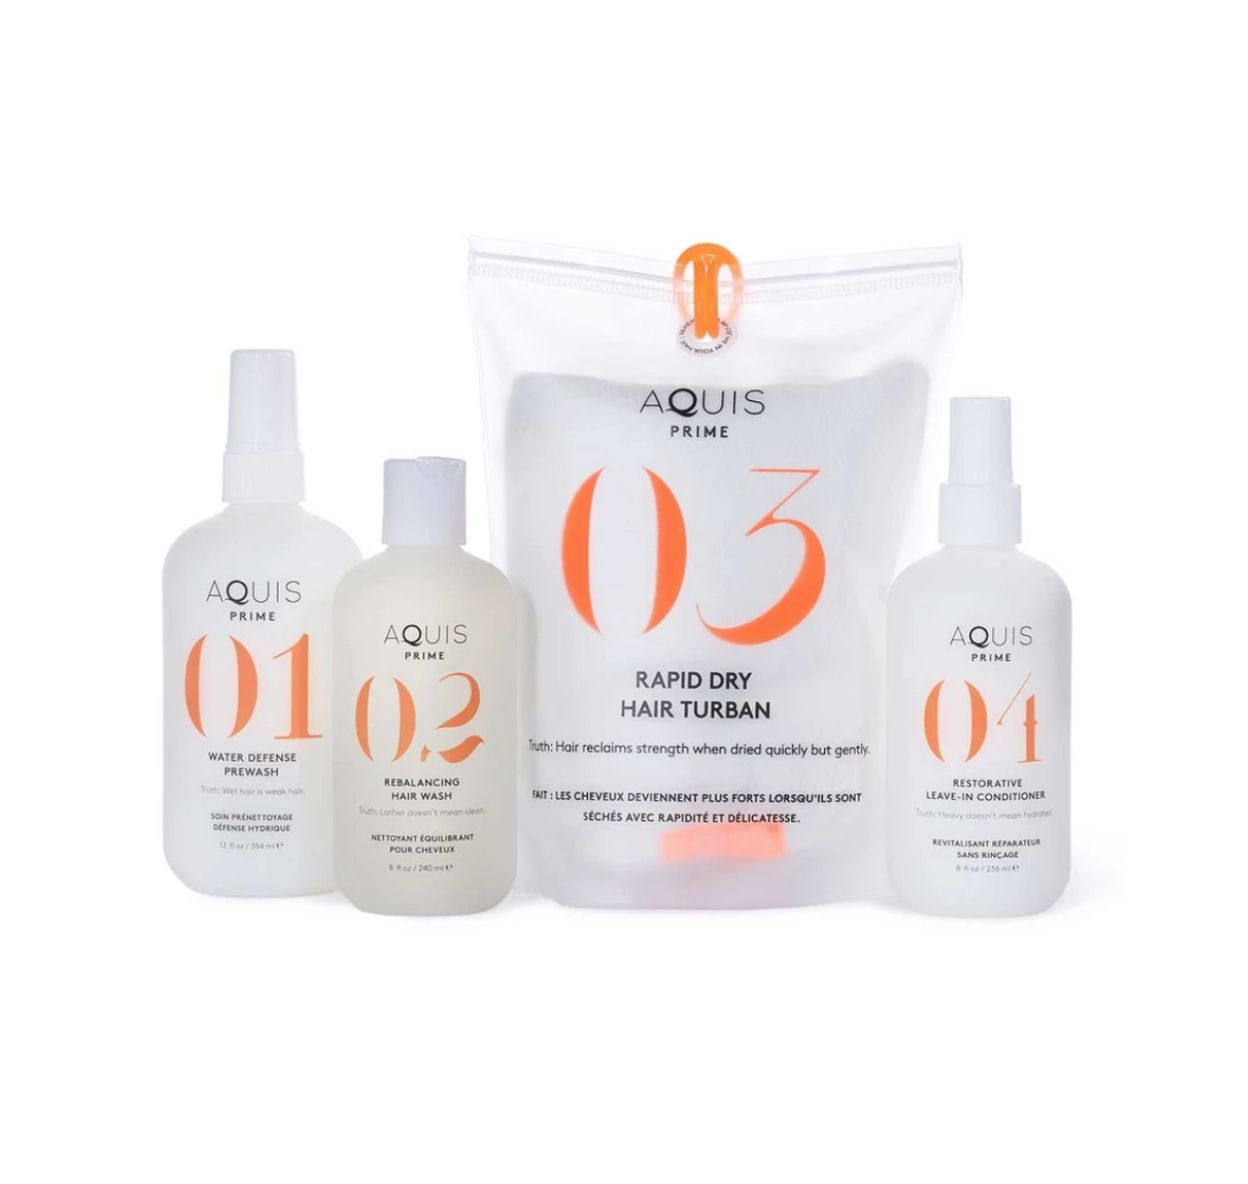 Aquis Prime System for hair